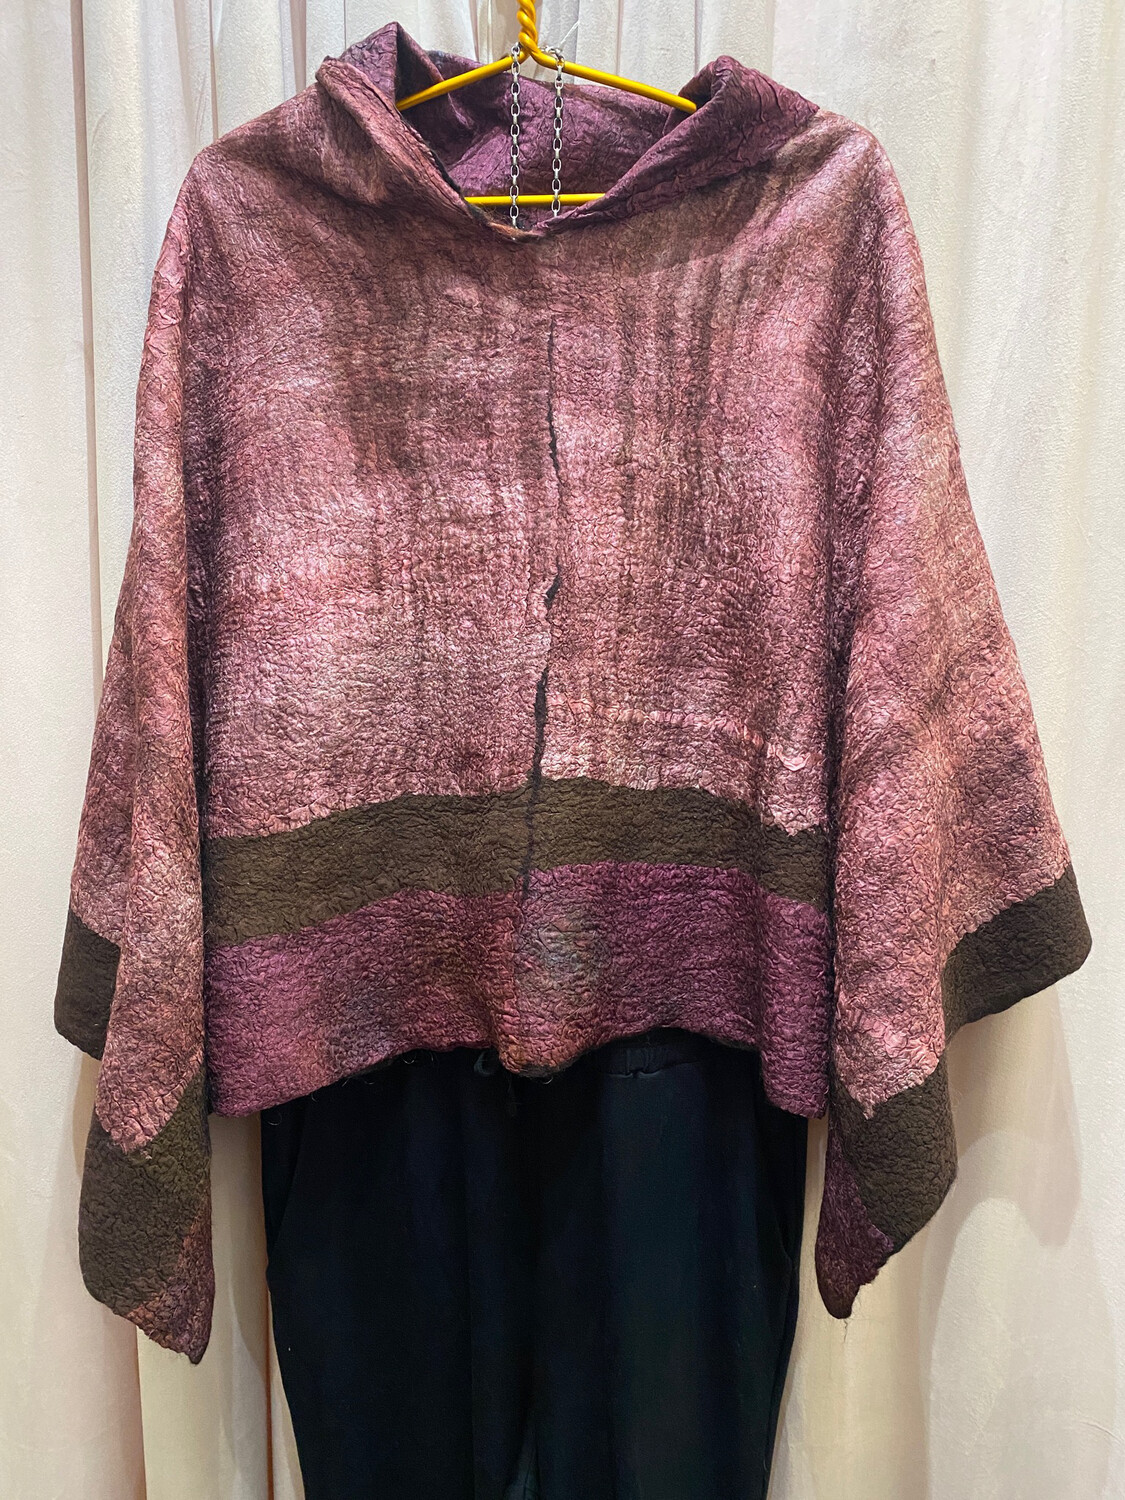 TFSWA Felted Reversible Ponchos